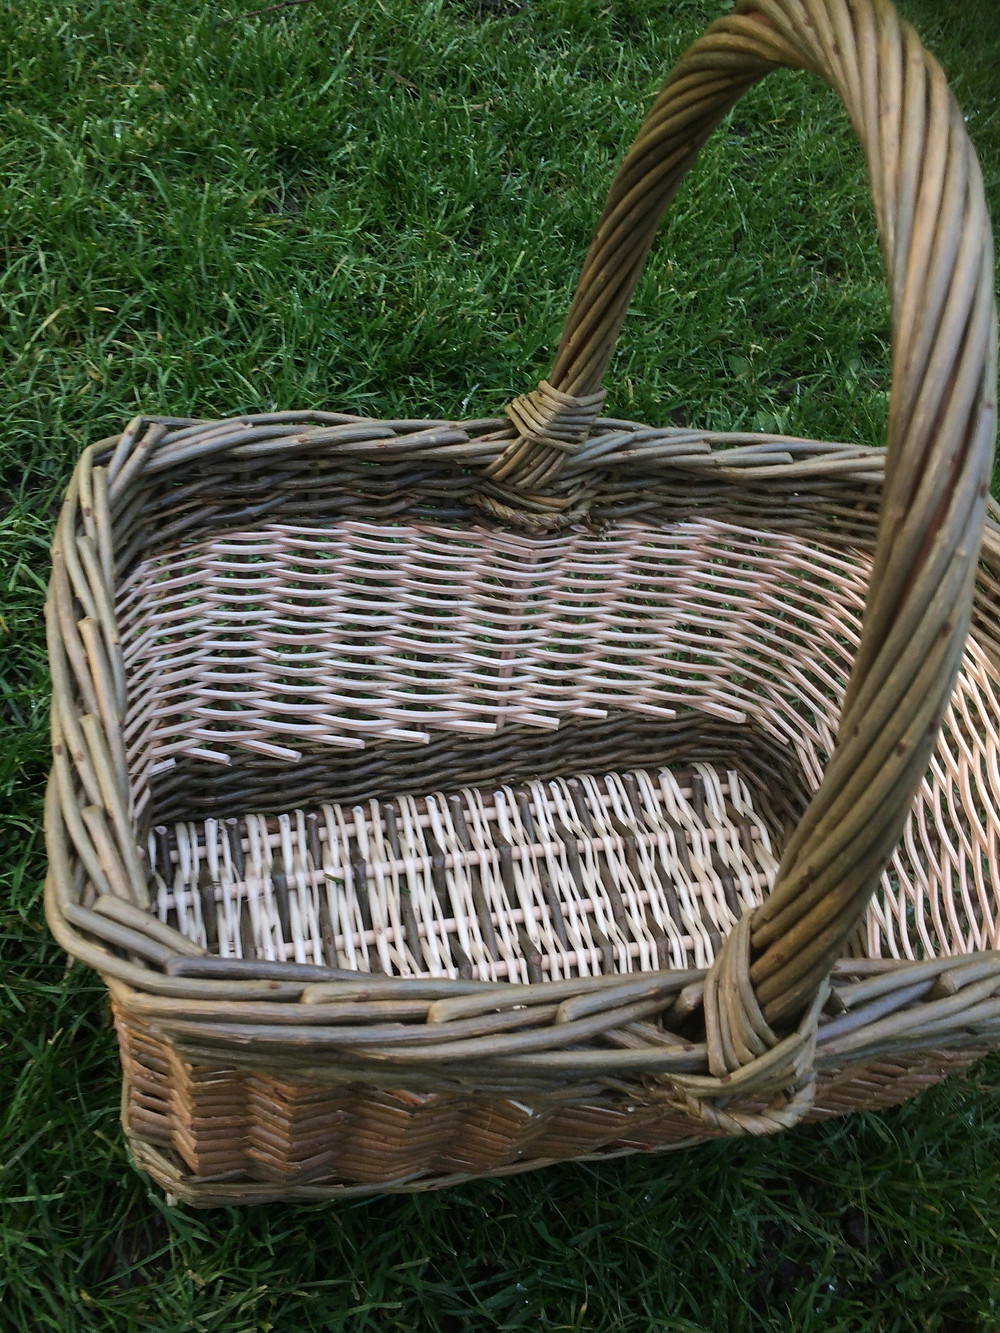 Square basket willow basketry shropshire travelling weaver city and guilds level 3 basketry